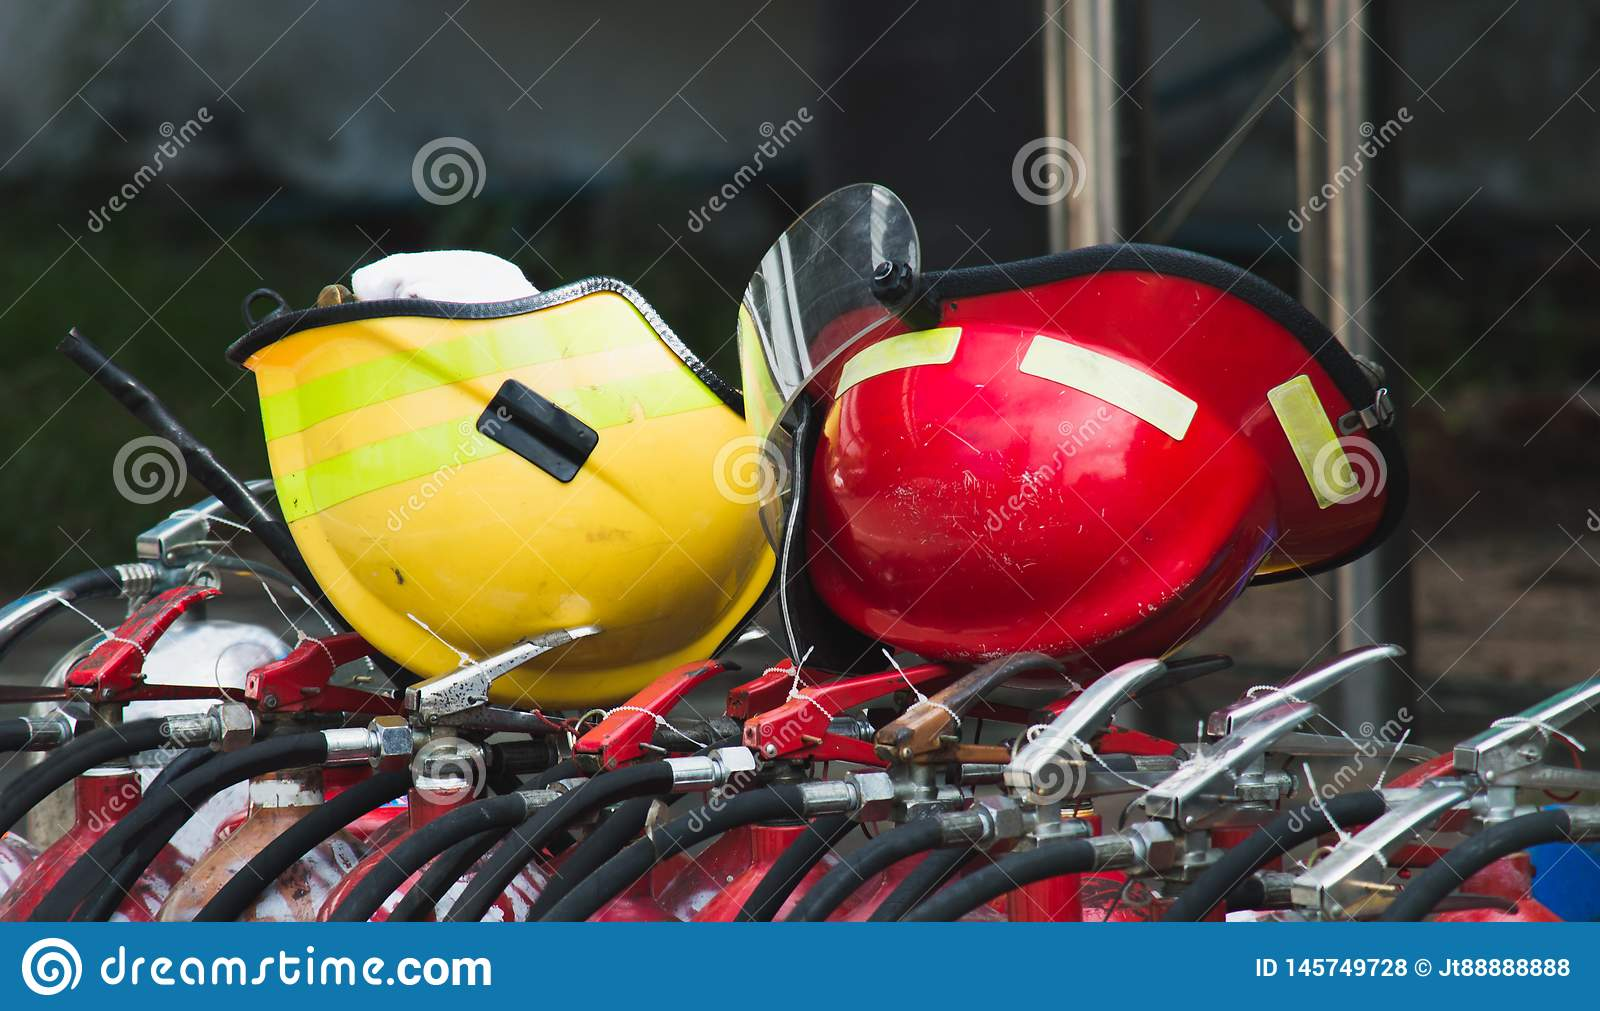 Red and yellow safety helmet on fire tank